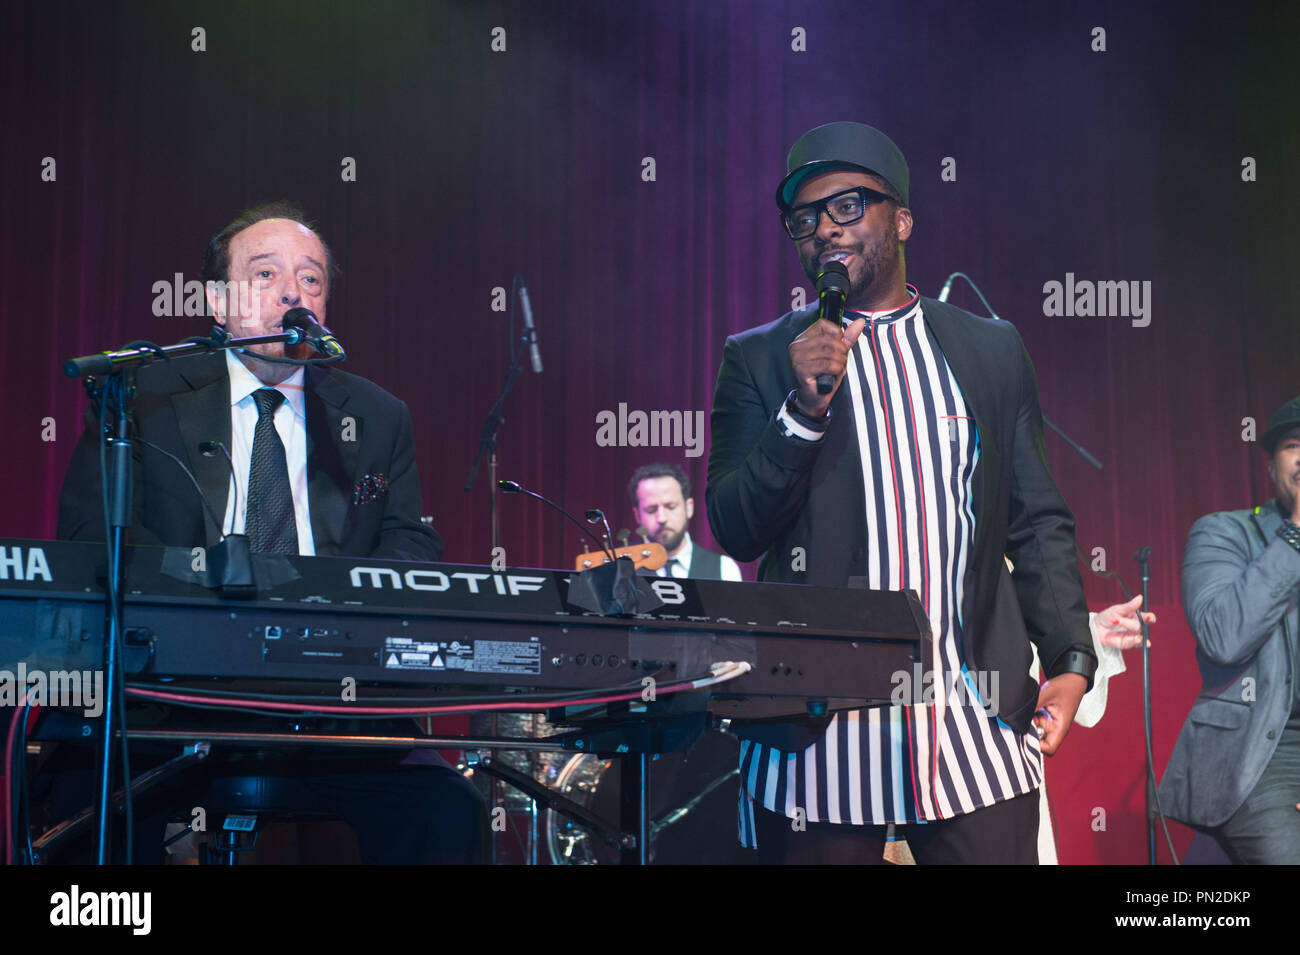 Sergio Mendes and will.i.am perform at the Governor's Ball after the live ABC Telecast of The 87th Oscars® at the Dolby® Theatre in Hollywood, CA on Sunday, February 22, 2015.  File Reference # 32571_025THA  For Editorial Use Only -  All Rights Reserved - Stock Image